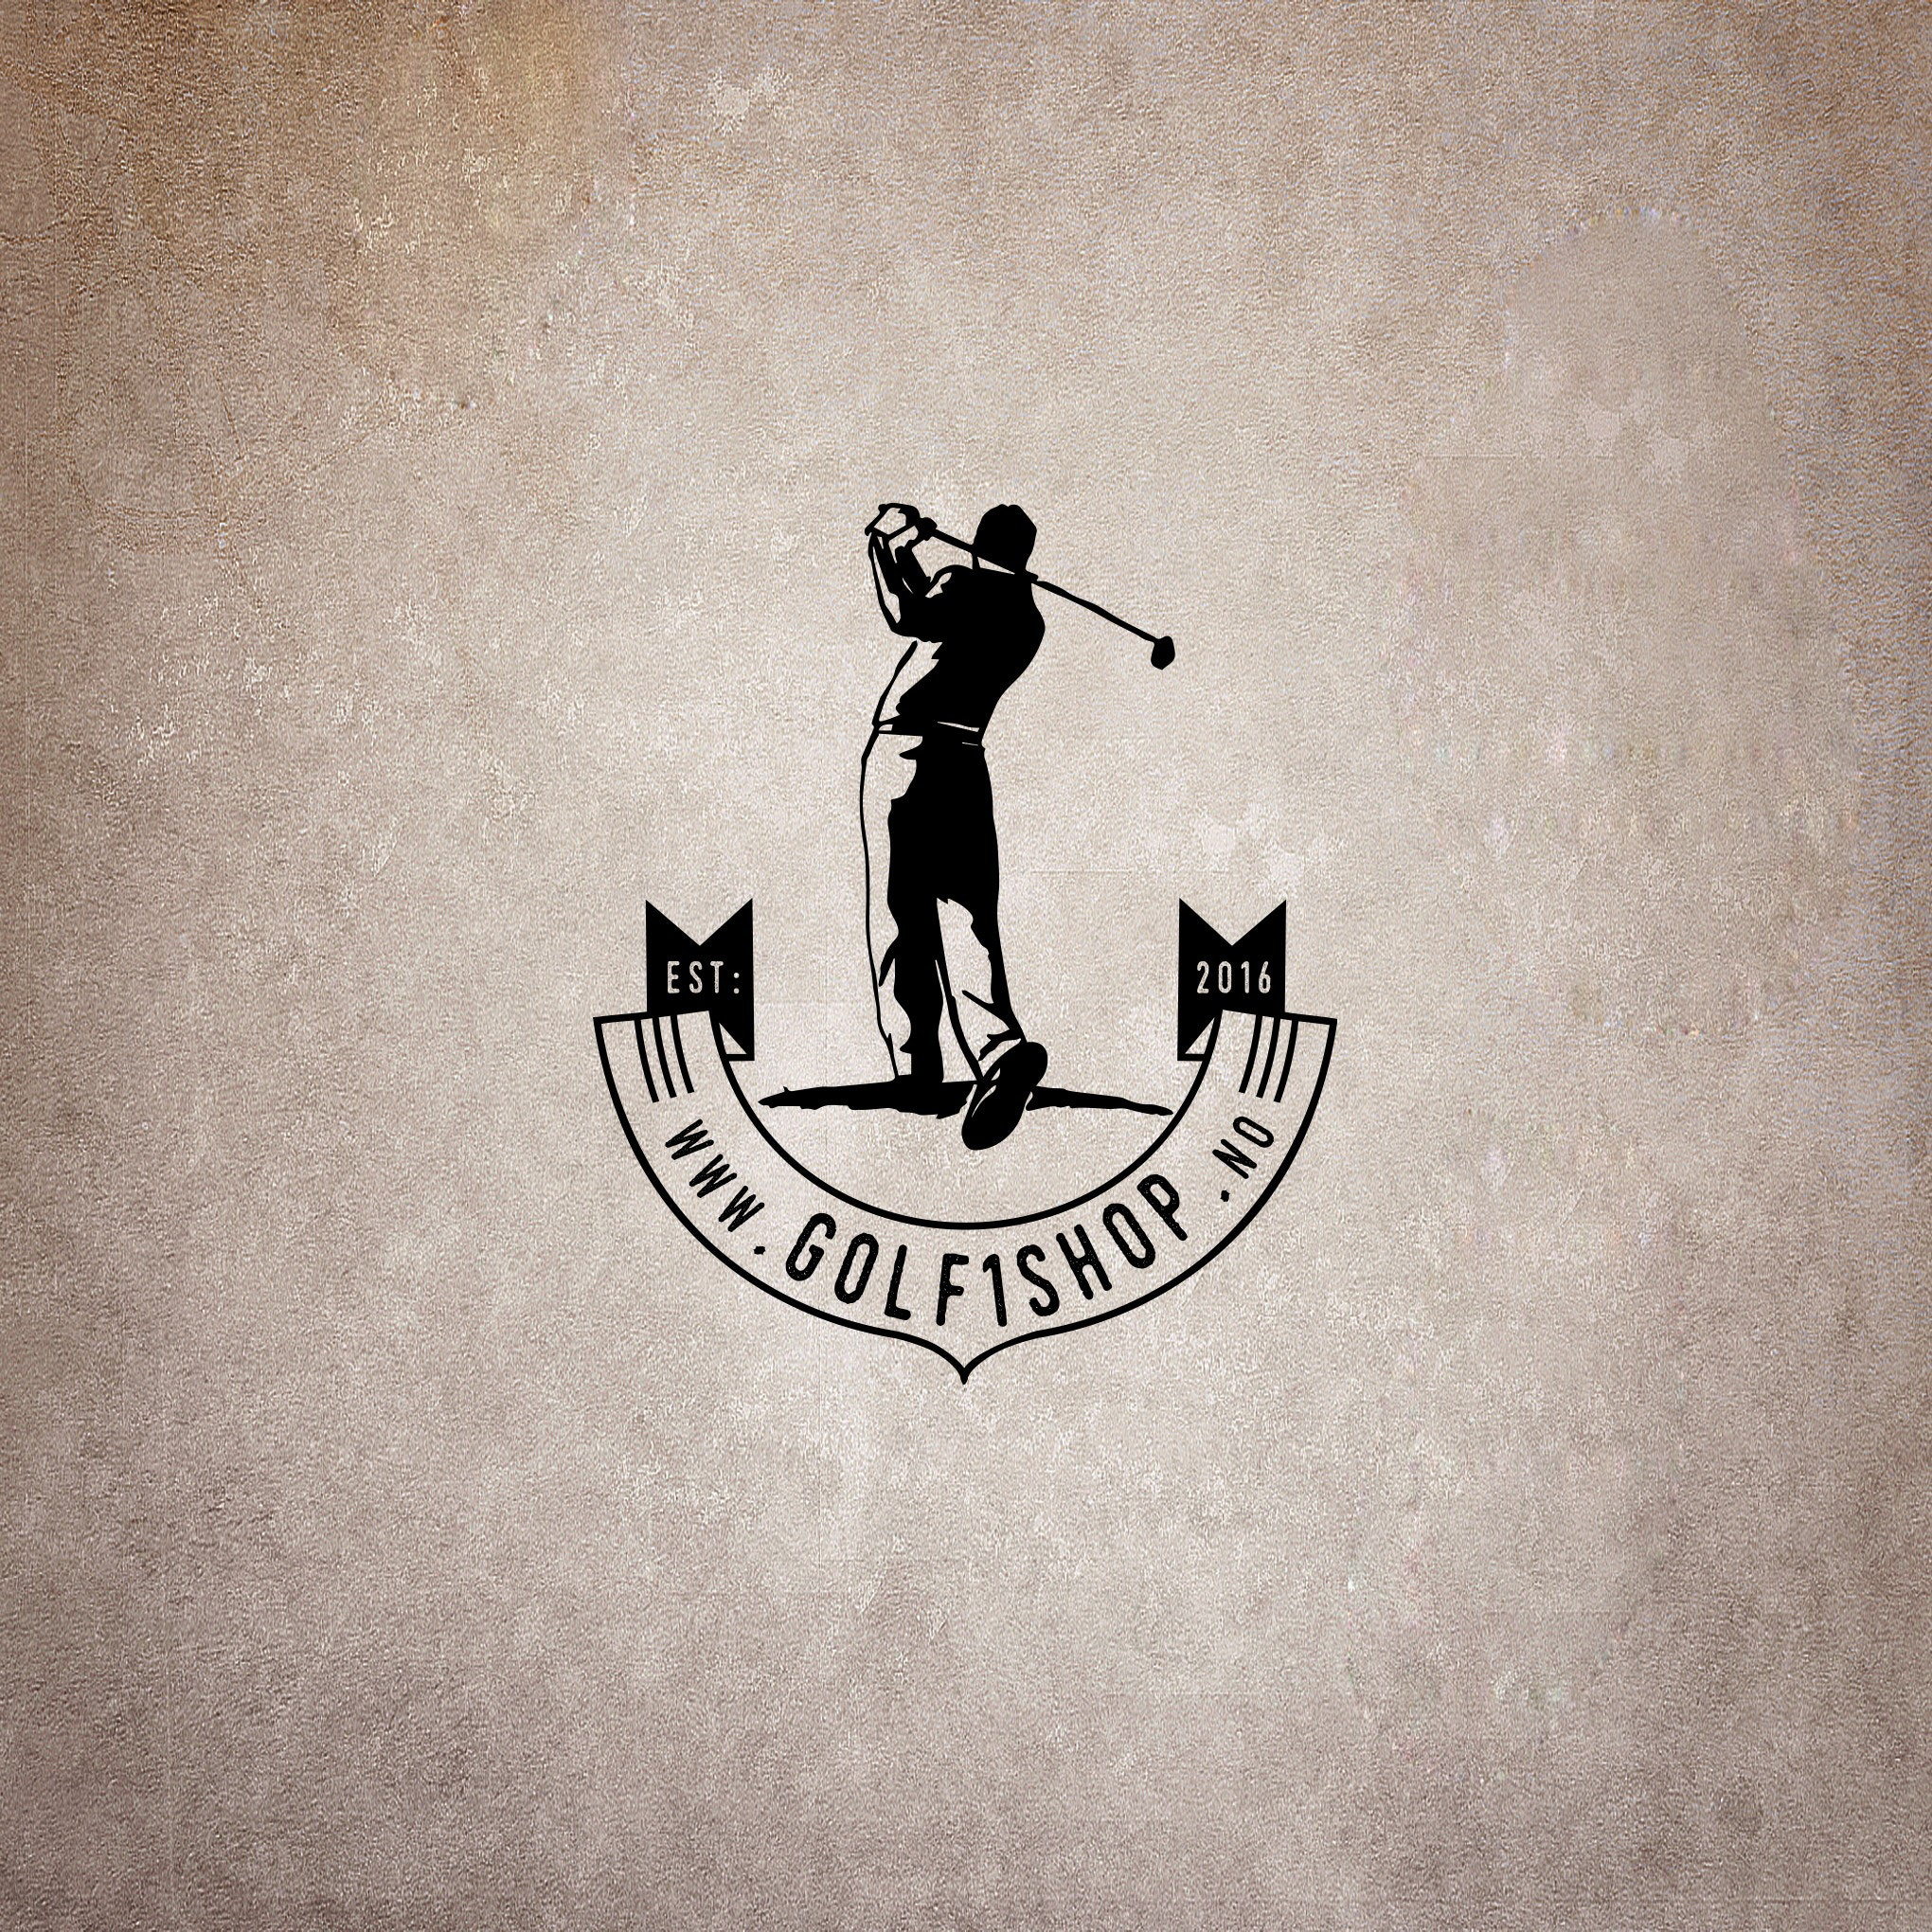 Golf 1 Shop logo